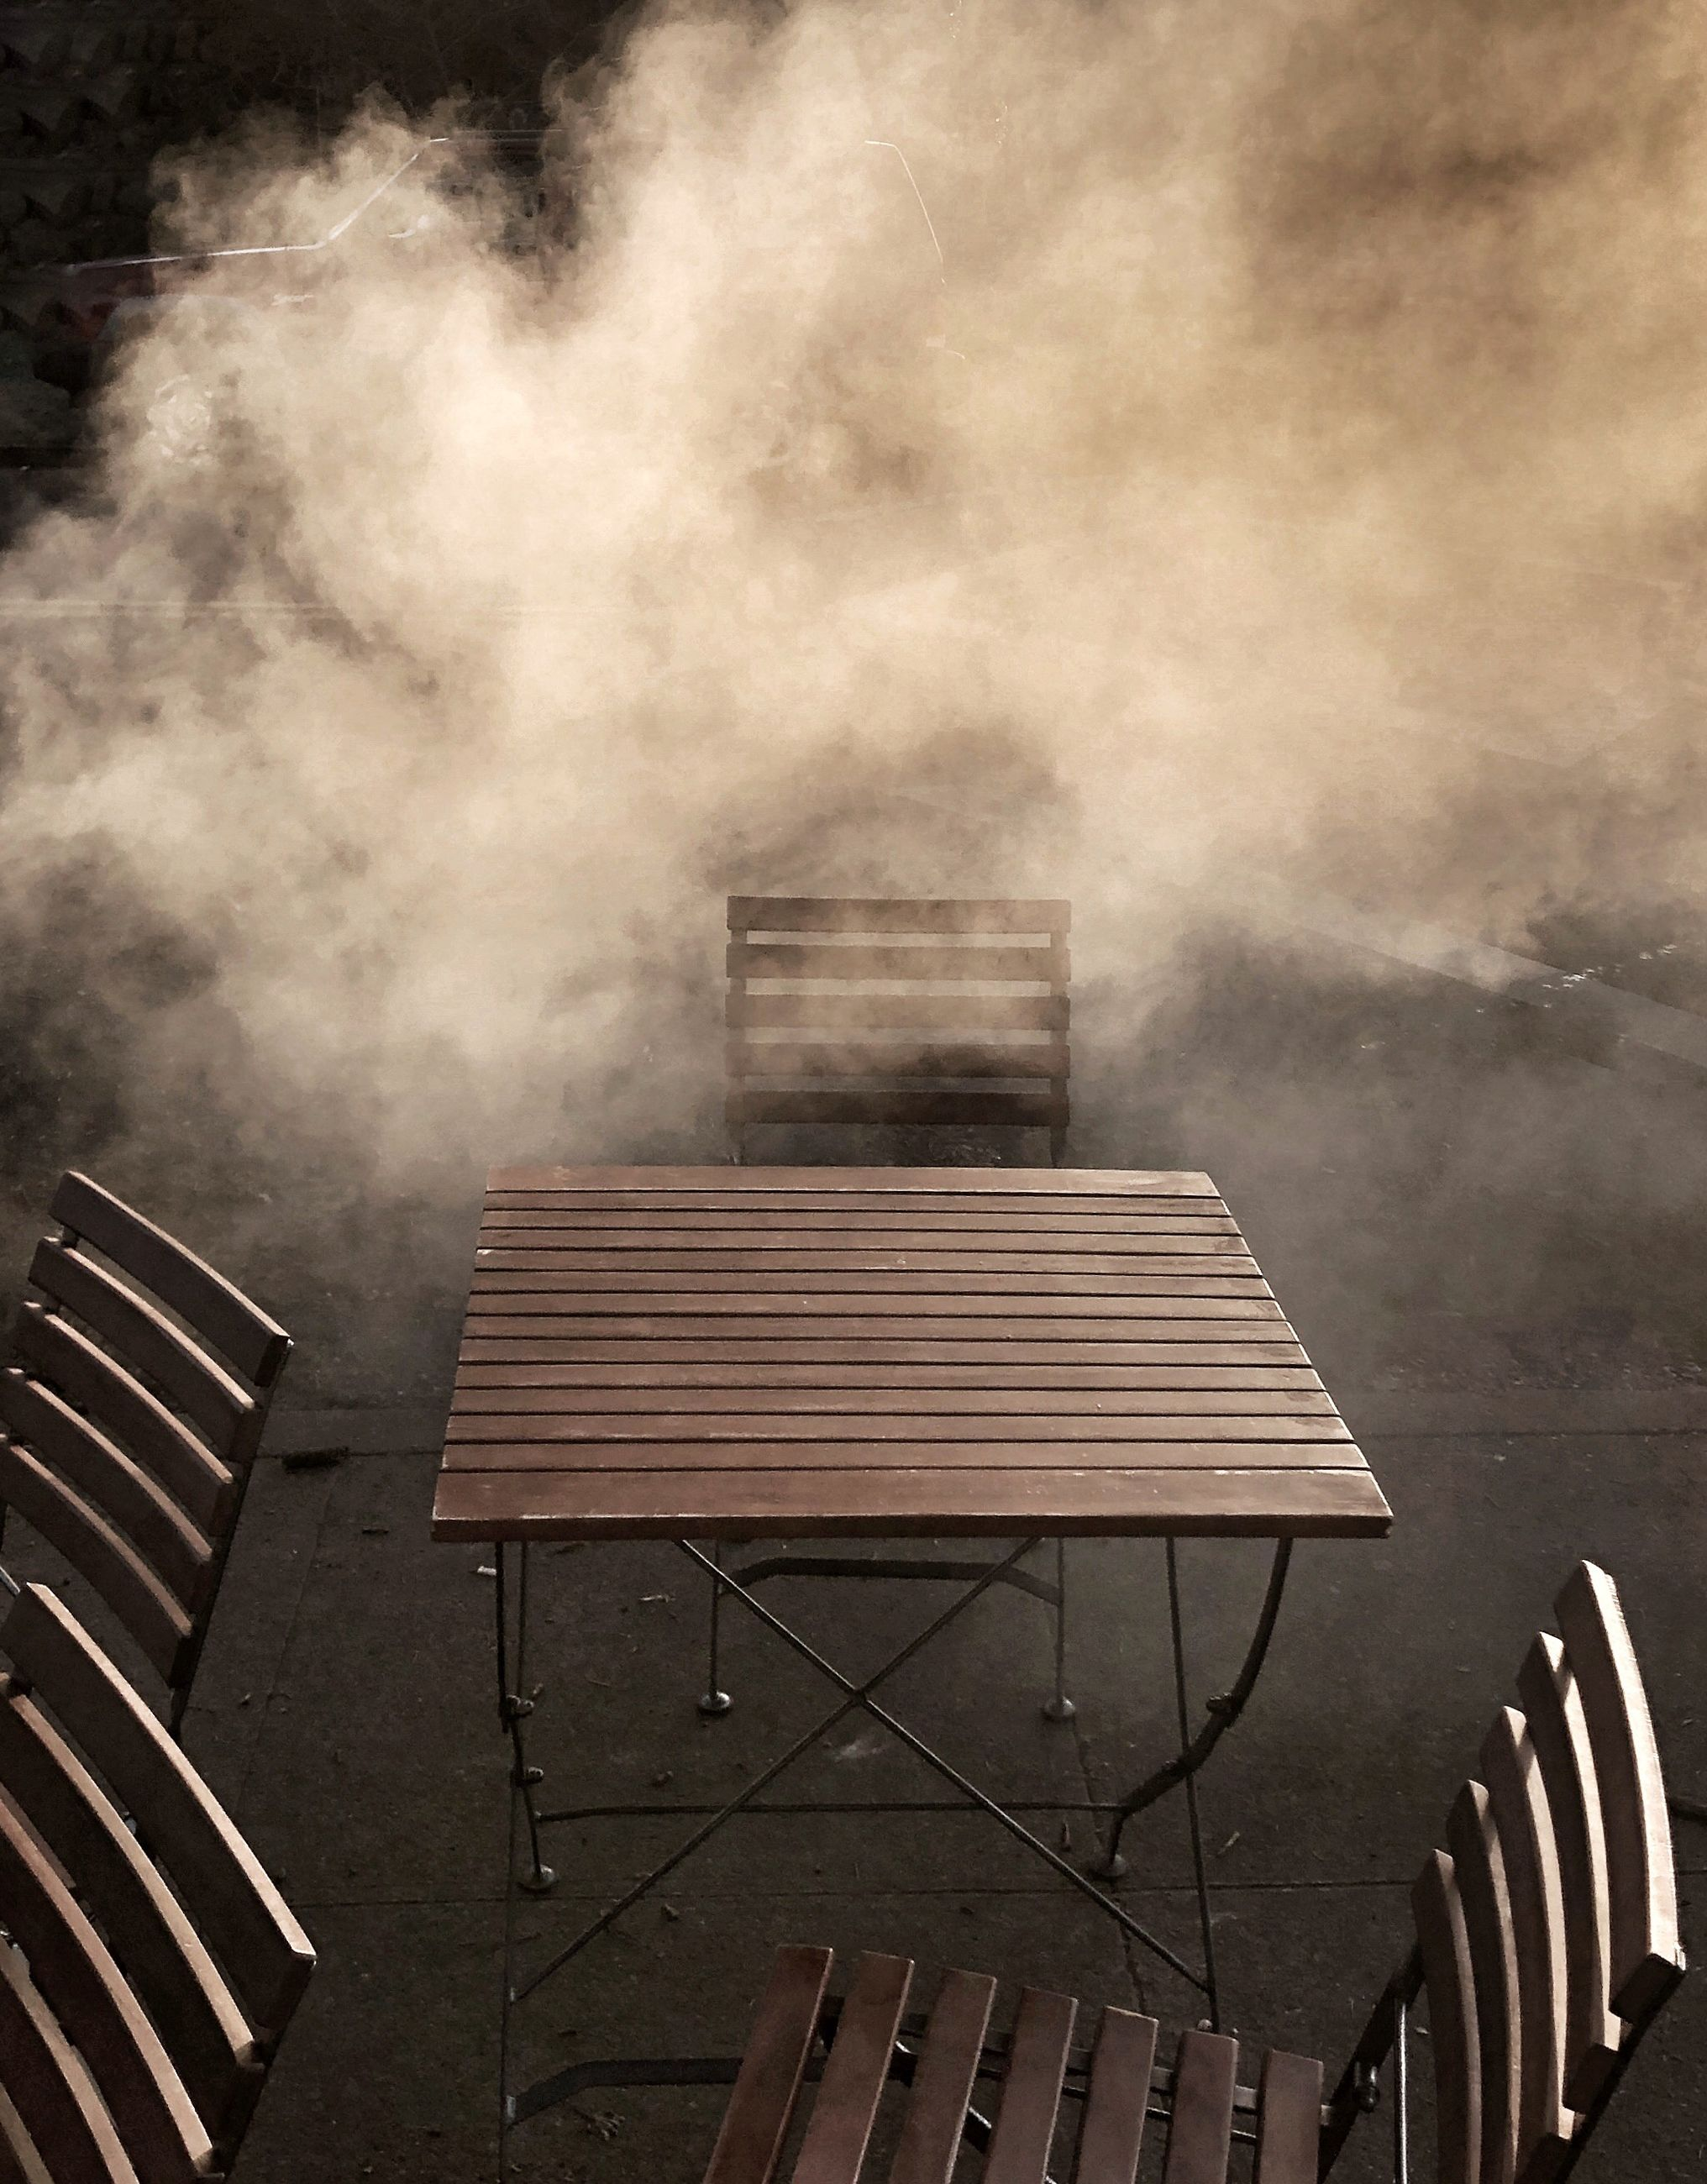 architecture, built structure, smoke - physical structure, building exterior, nature, no people, outdoors, day, roof, building, seat, sky, railing, low angle view, wood - material, striped, fog, pattern, heat - temperature, pollution